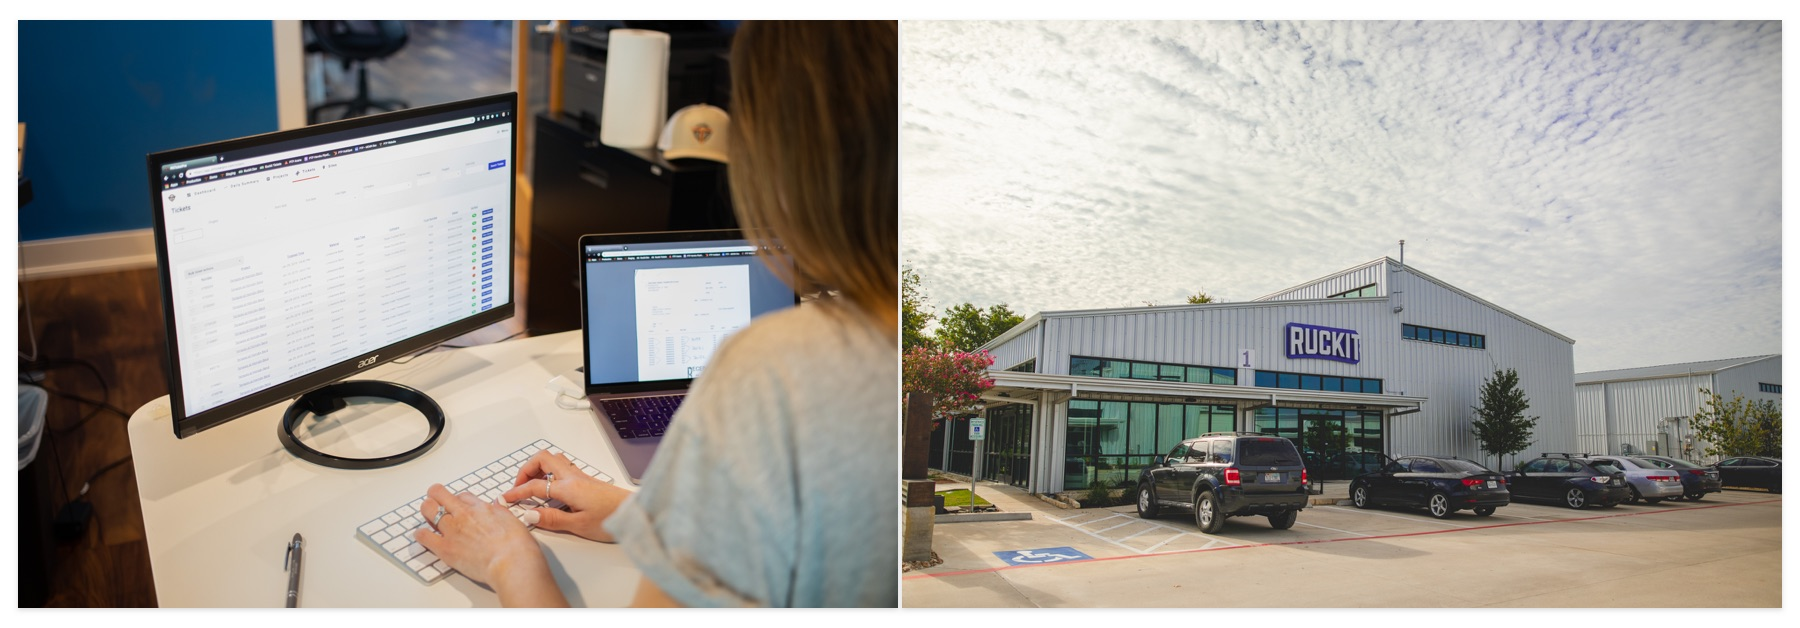 A woman using the Ruckit dashboard, and an outside shot of the Ruckit headquarters